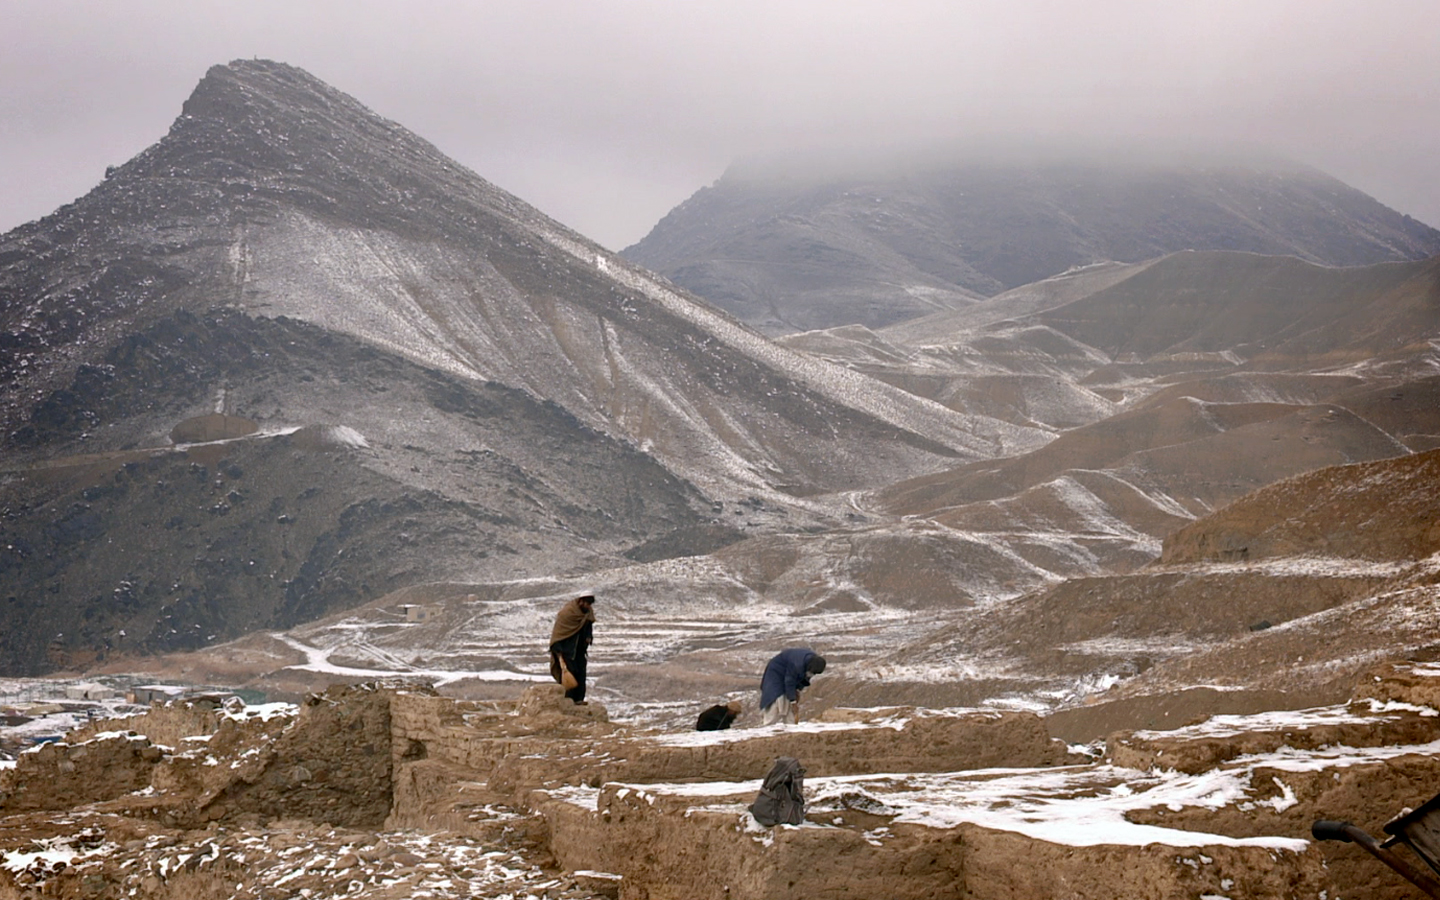 A beautiful shot of Mes Aynak and the surrounding countryside. Photo by Brent E. Huffman